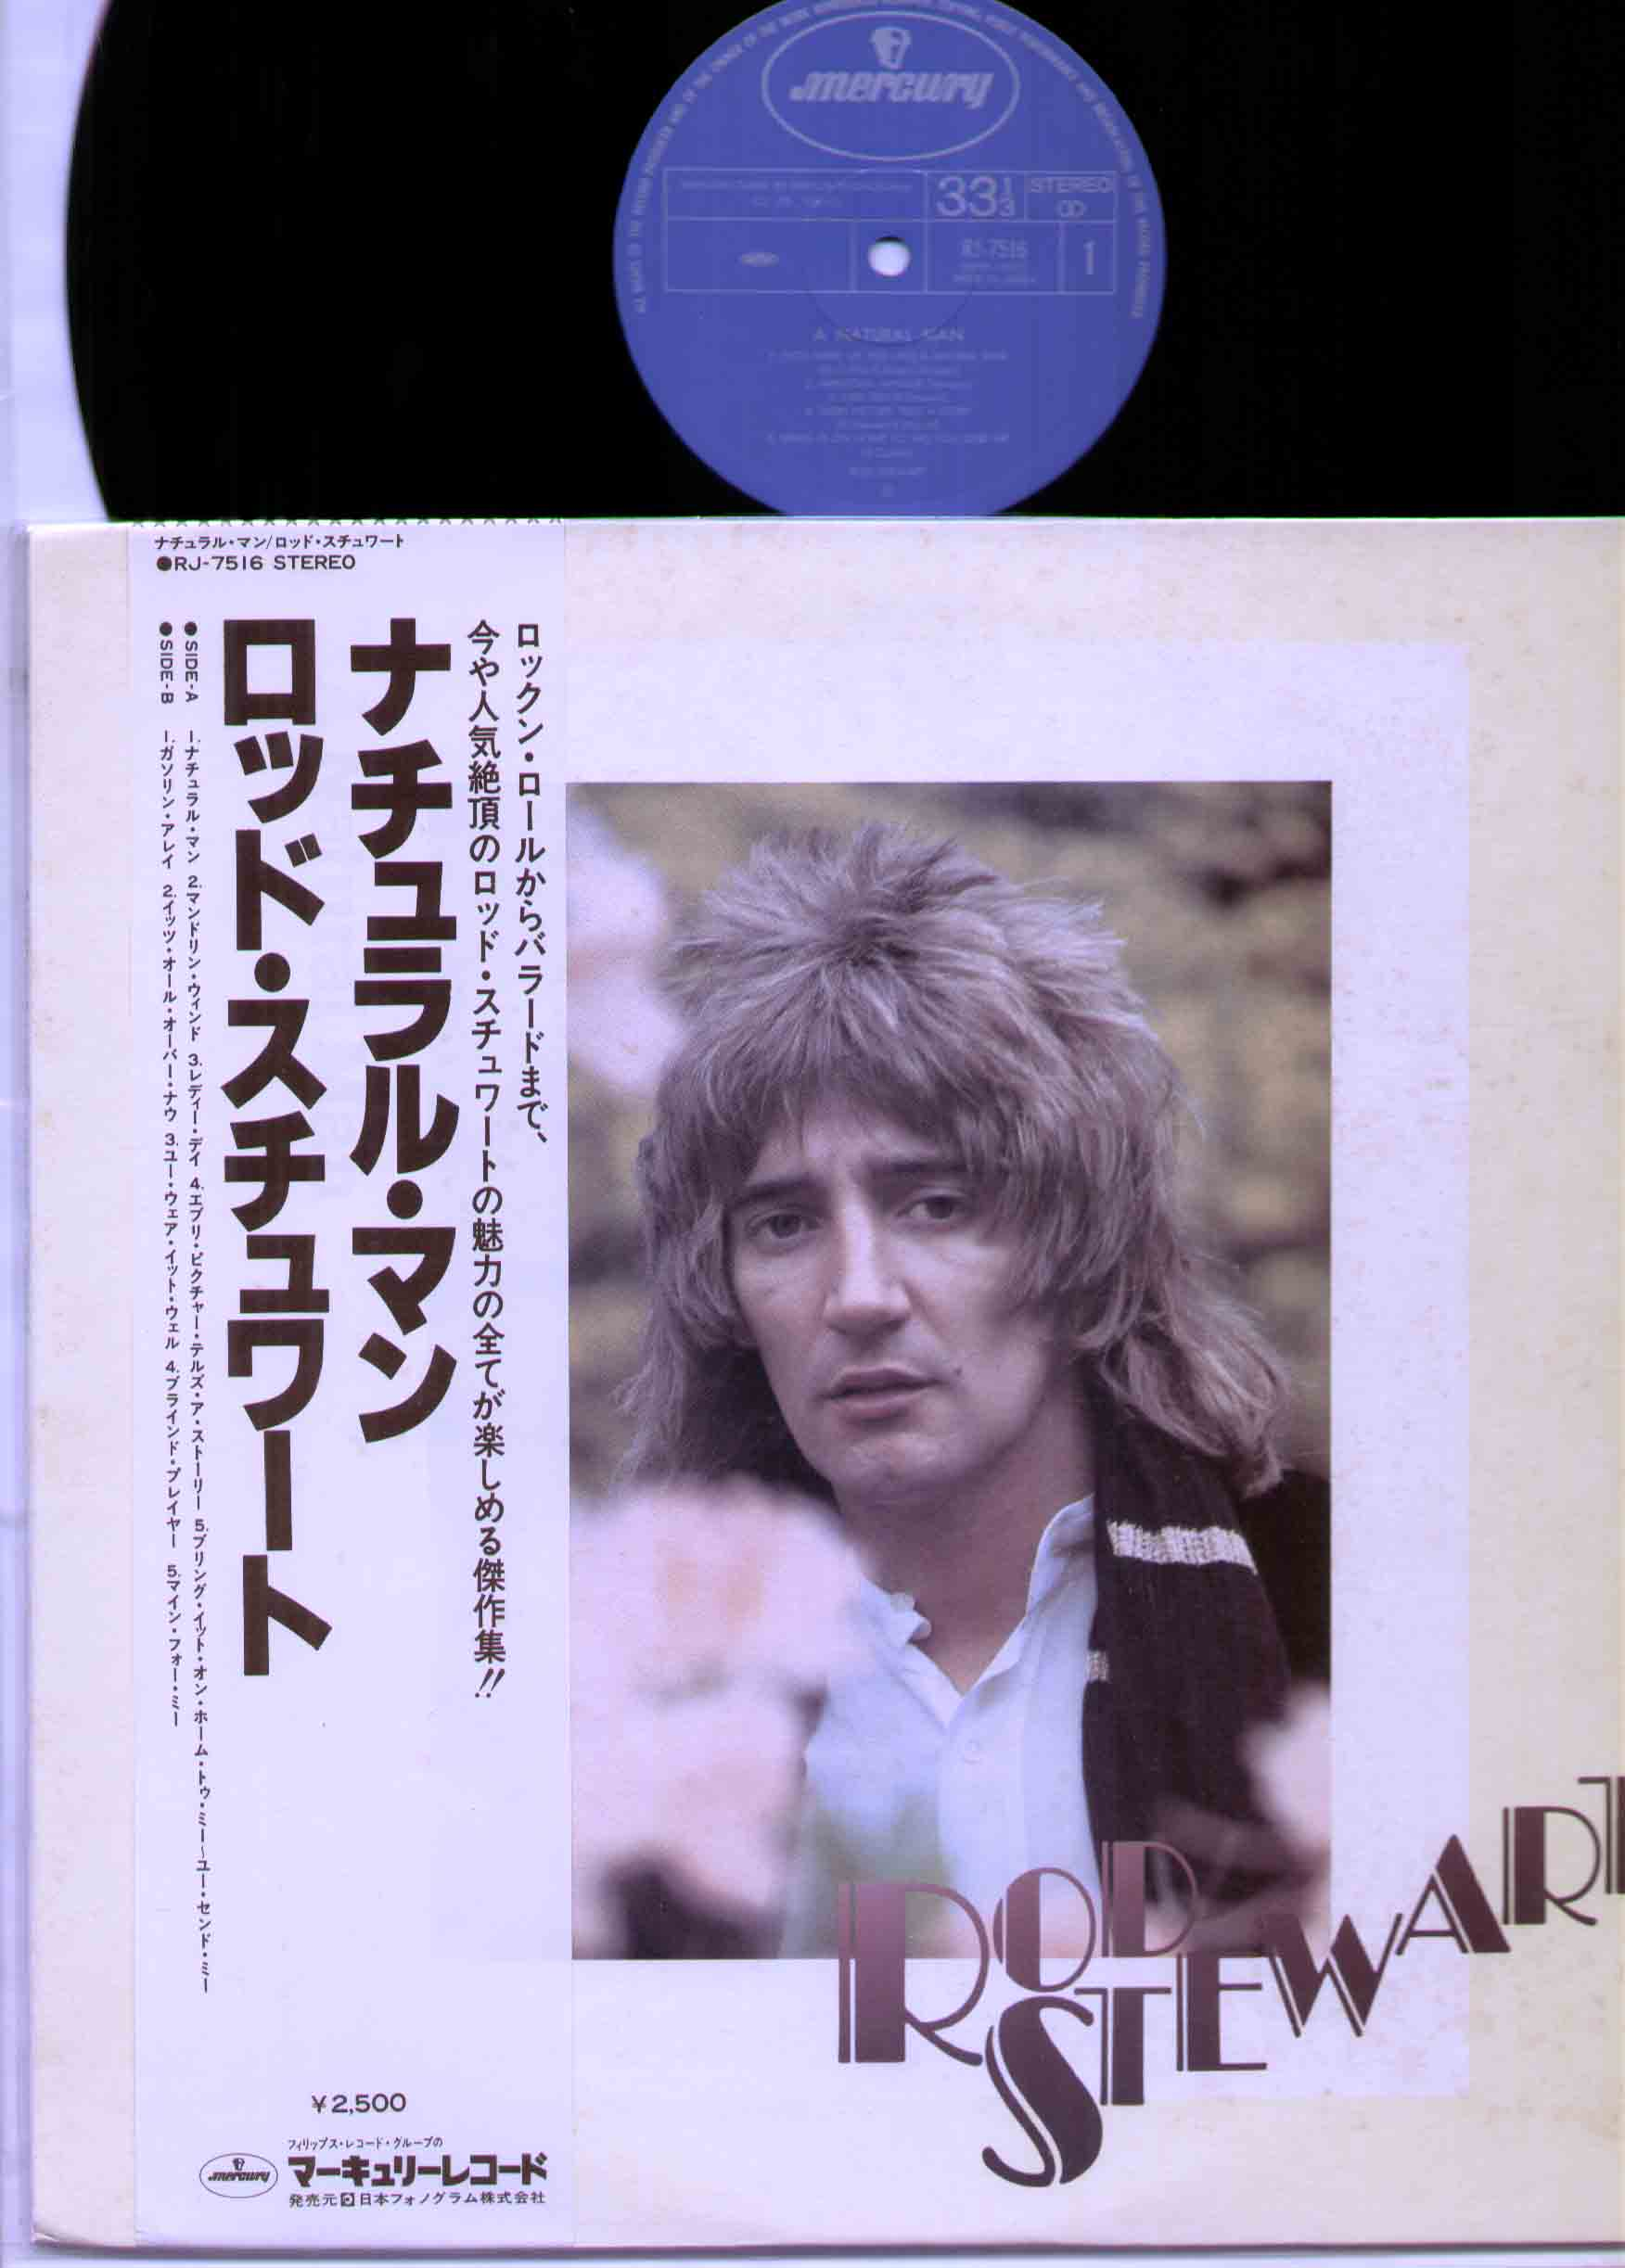 ROD STEWART - A Natural Man 1978 rare 10 trk japan only compilation - nice copy disc near mint sleeve excellent wi - 33T